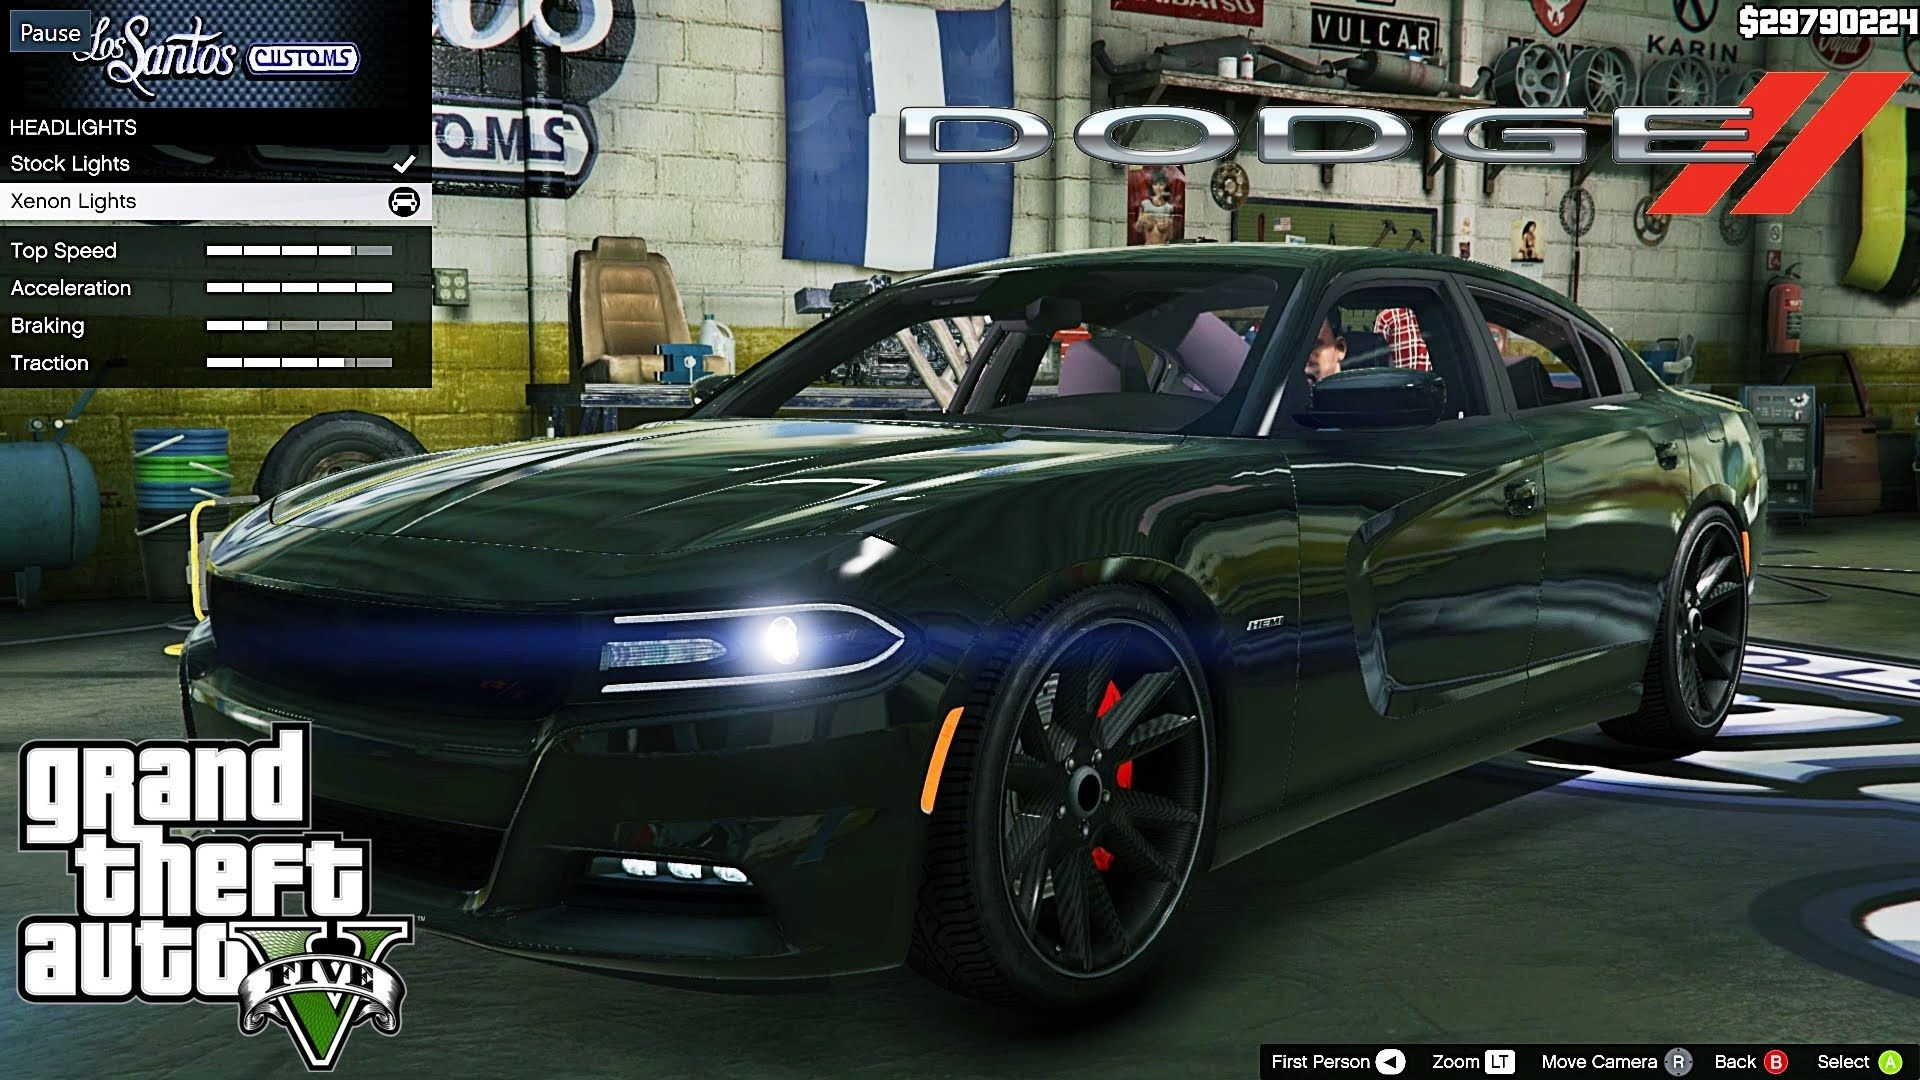 Latest dodge charger dodge charger rt gta v car mod tuning soley911 10503 ardsley on hudson ny i made this video to show you the dodge charger